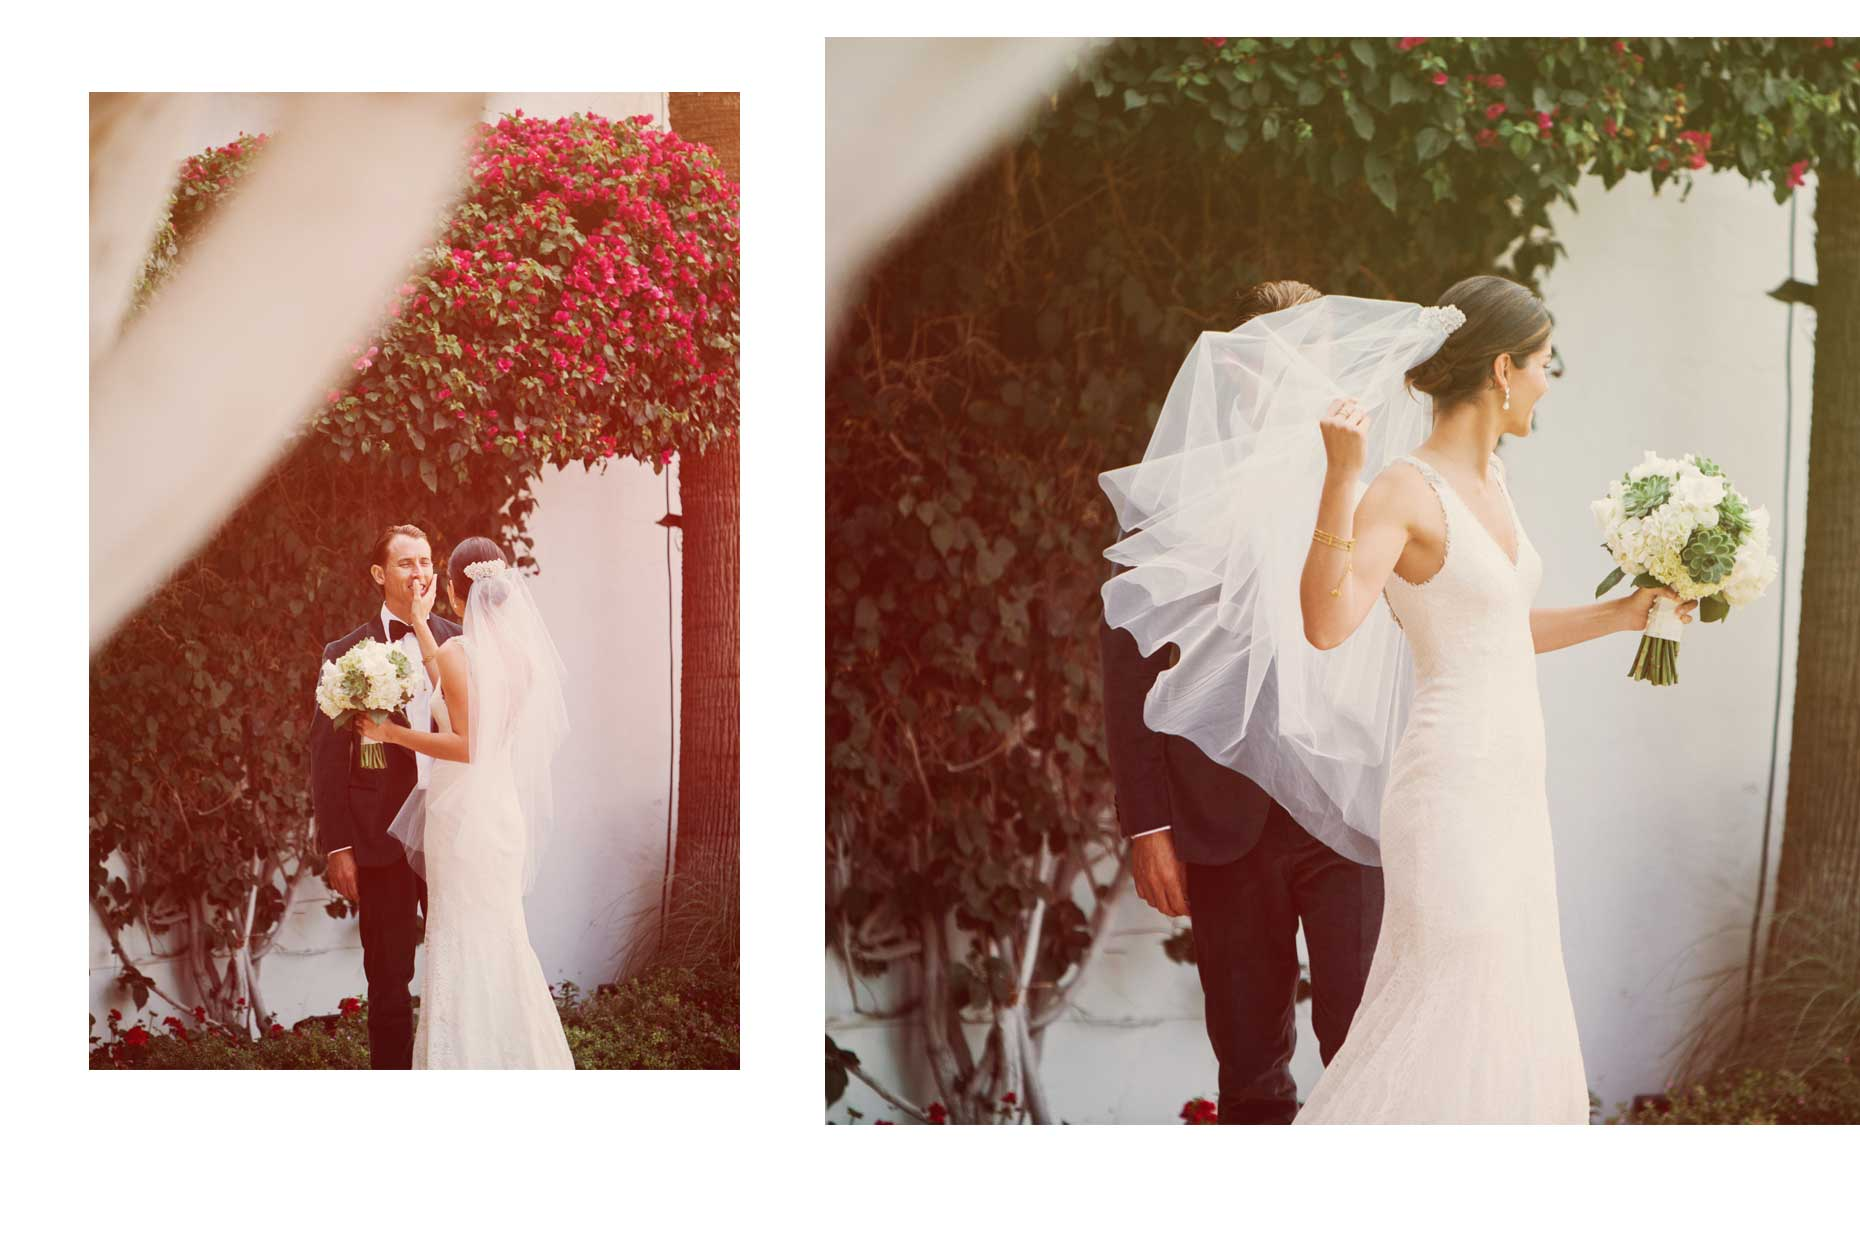 32-La-Quinta-Wedding-Photographer-in-Palm-Springs-_-Pierre-olivier-photo-3